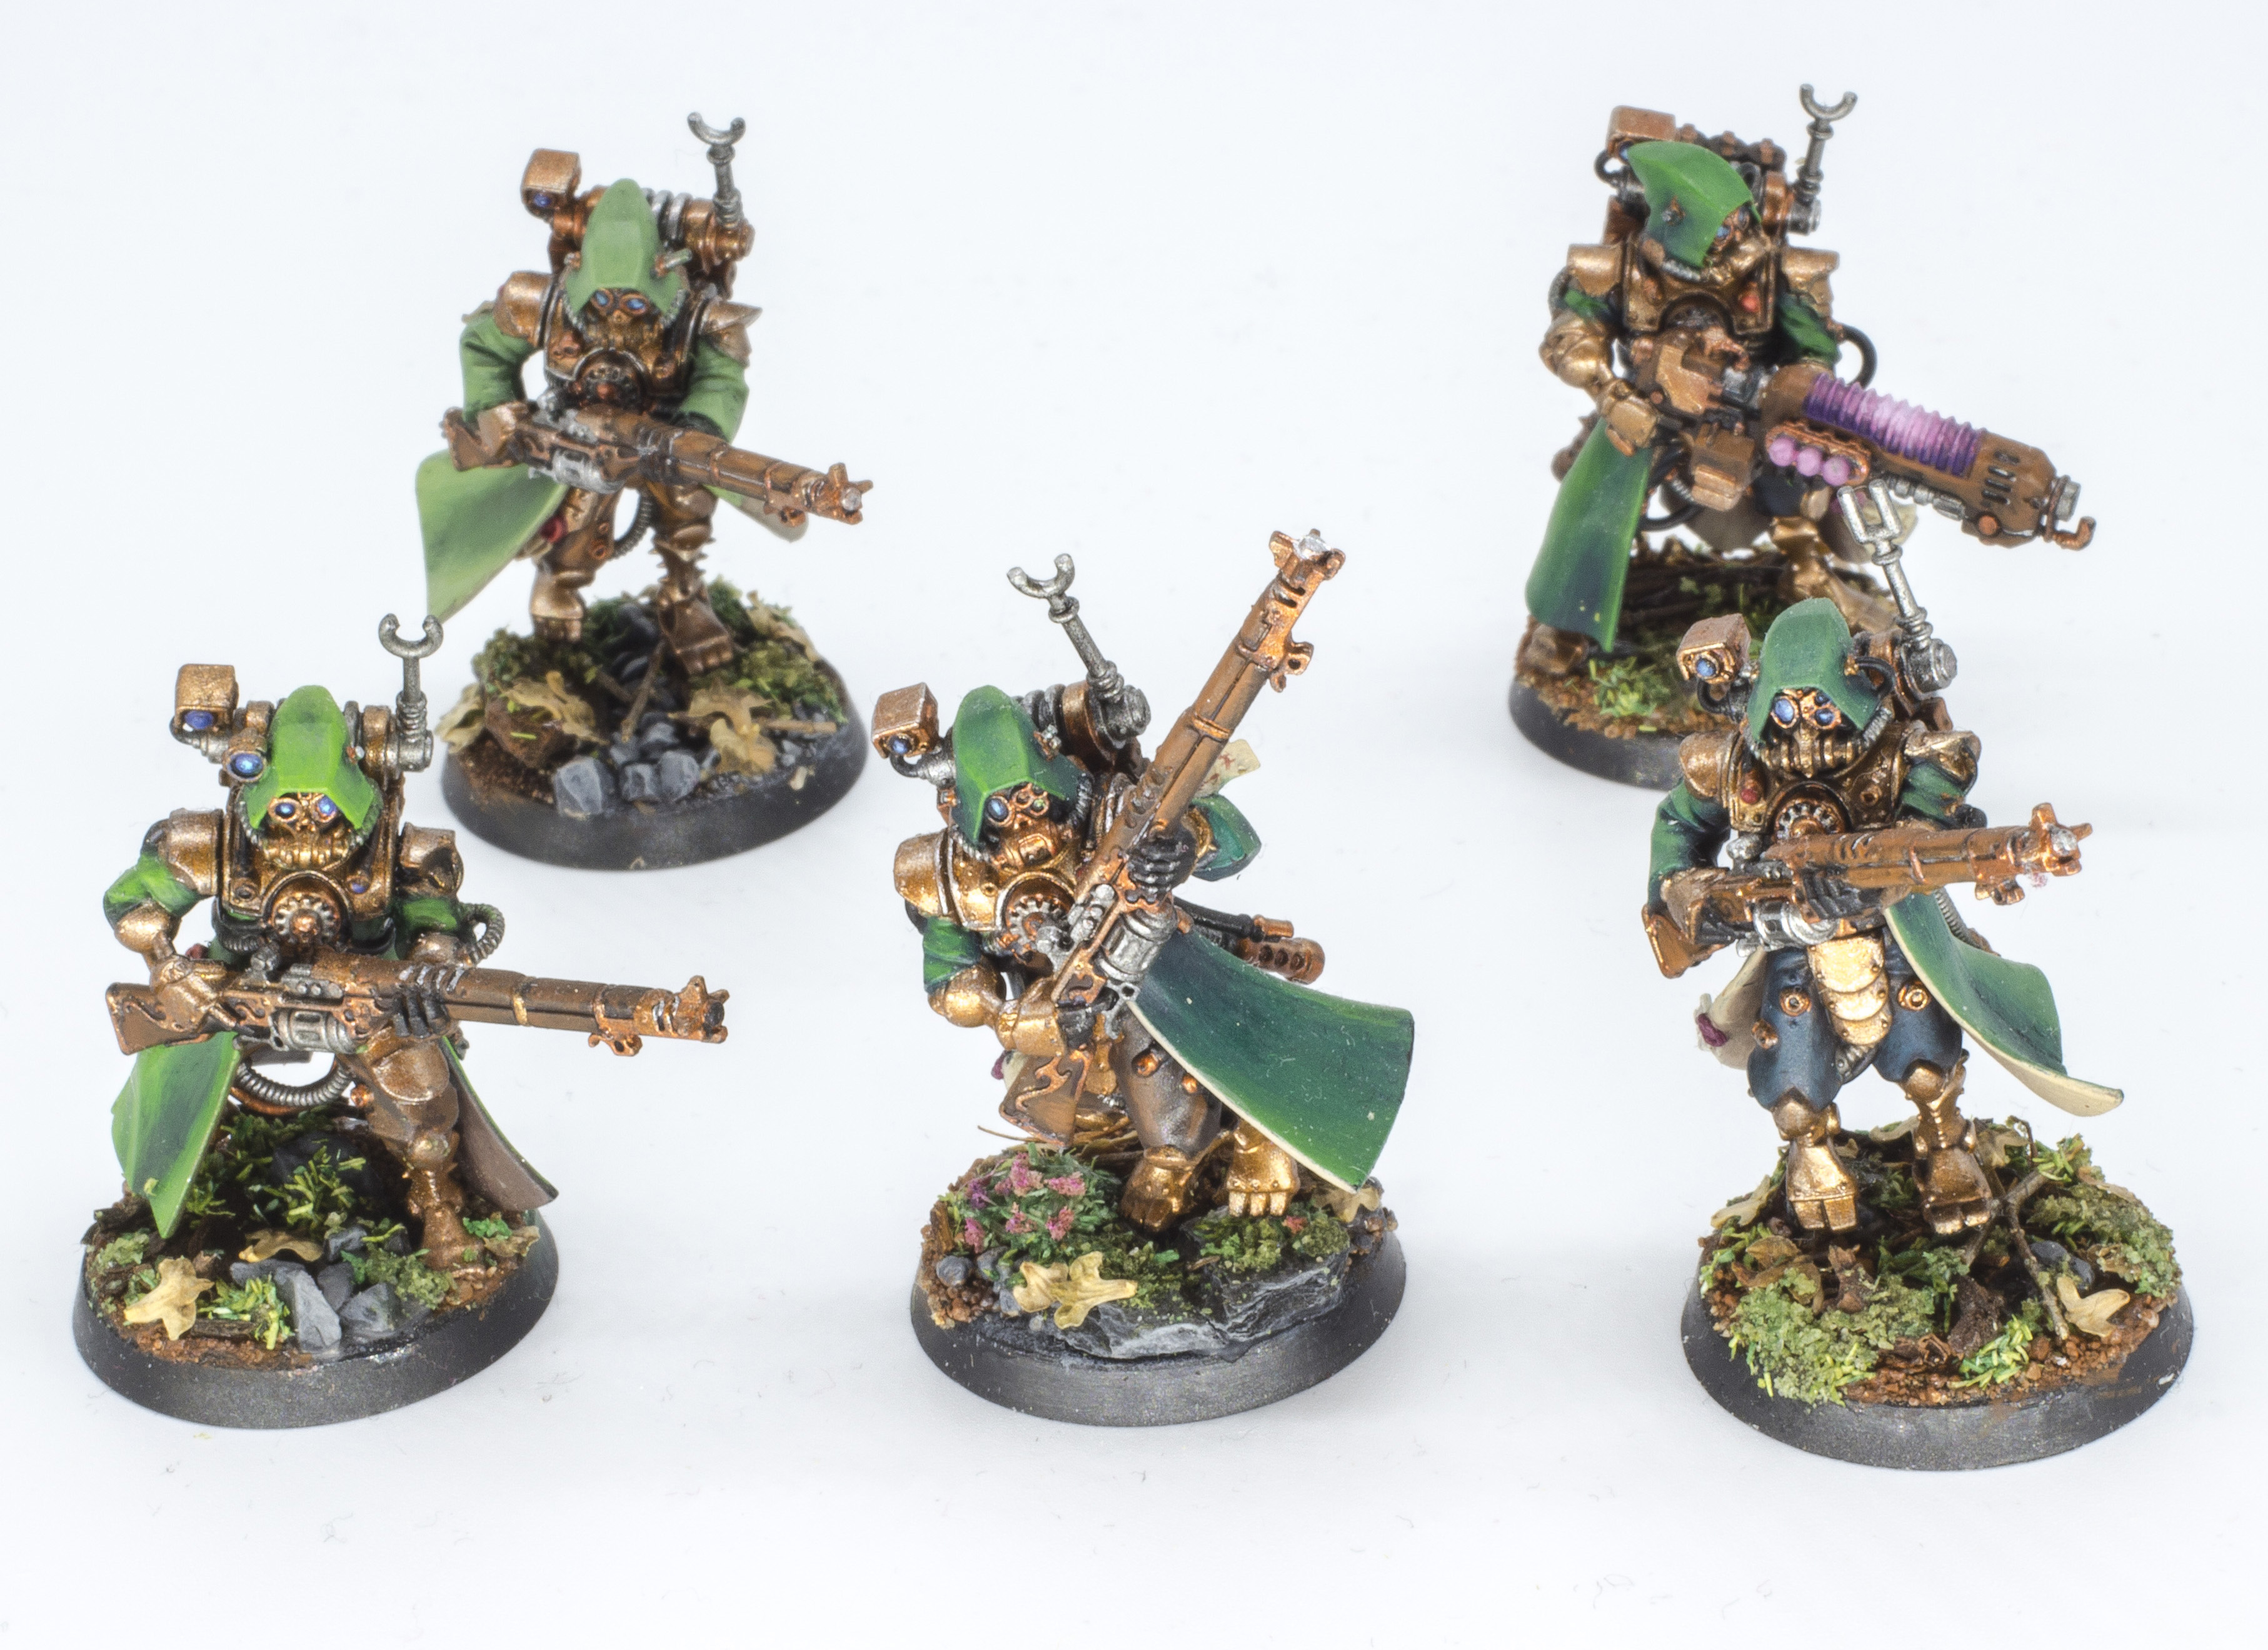 Skitarii forestiers. Ou comment se mettre au vert.